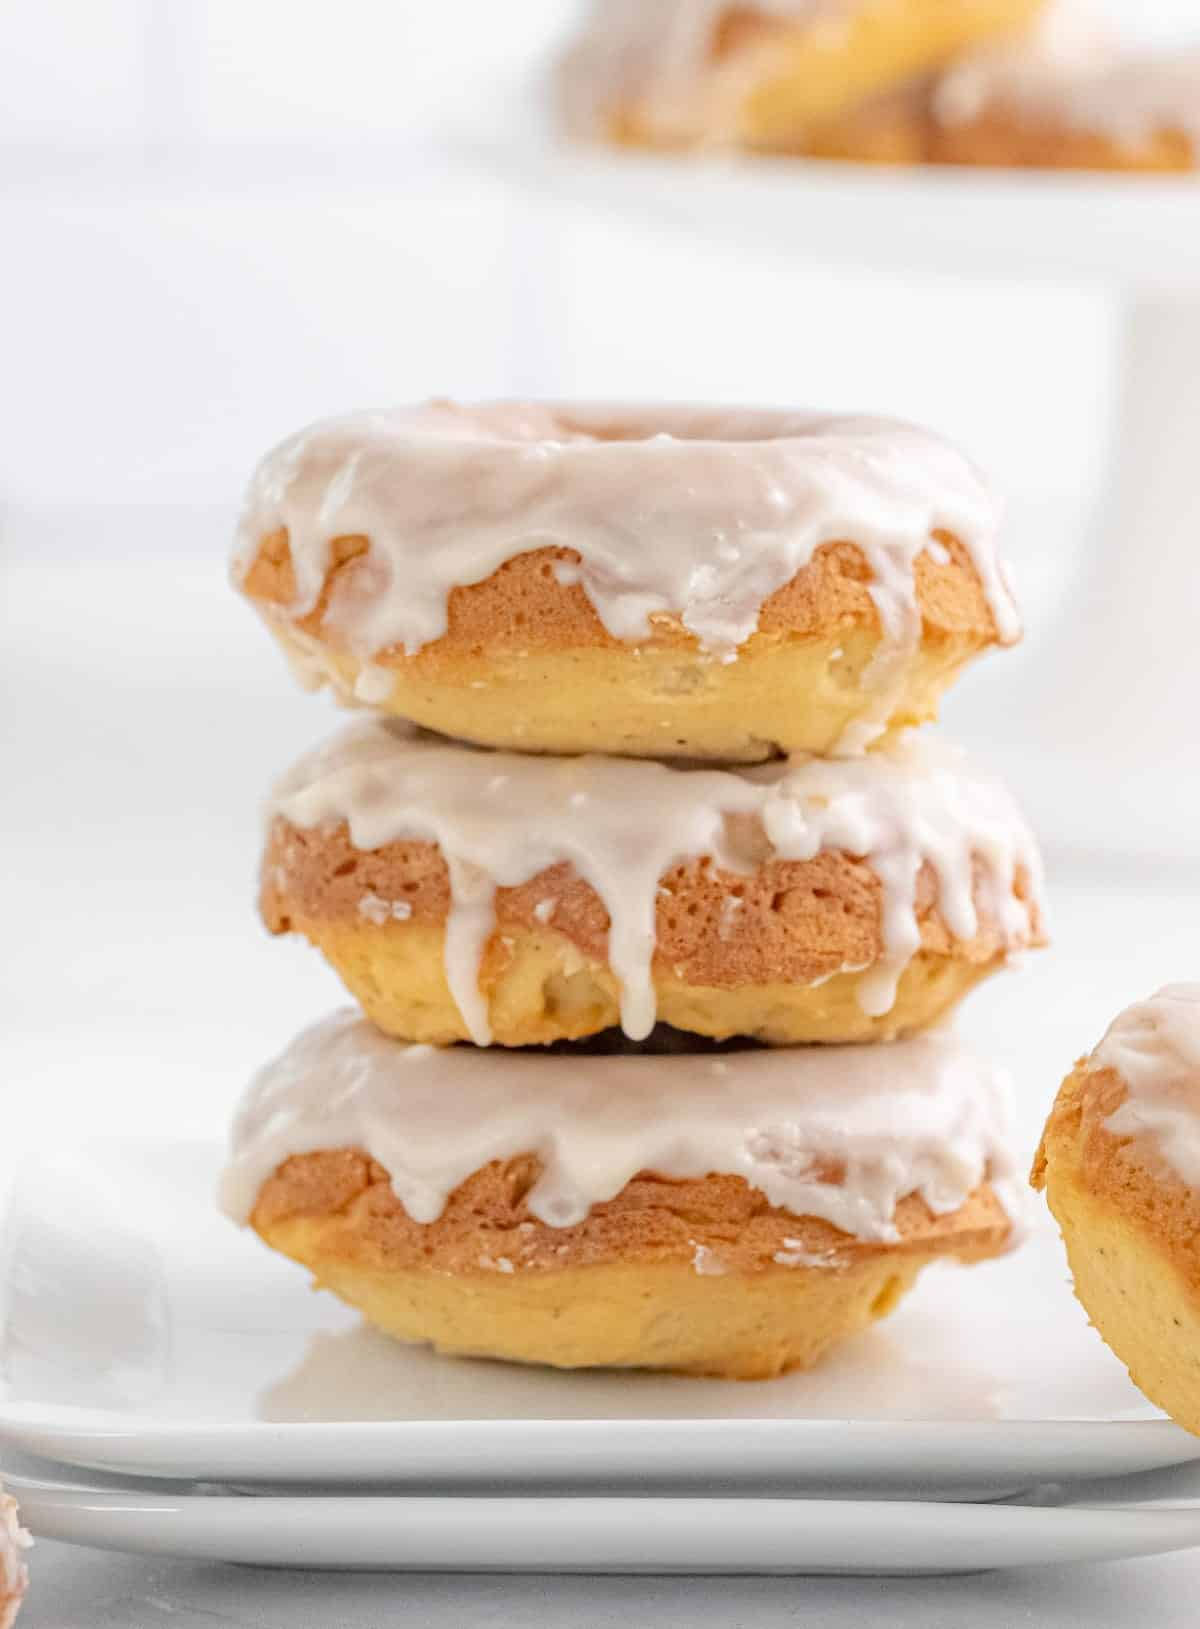 Three baked glazed donuts stacked on top of each other.